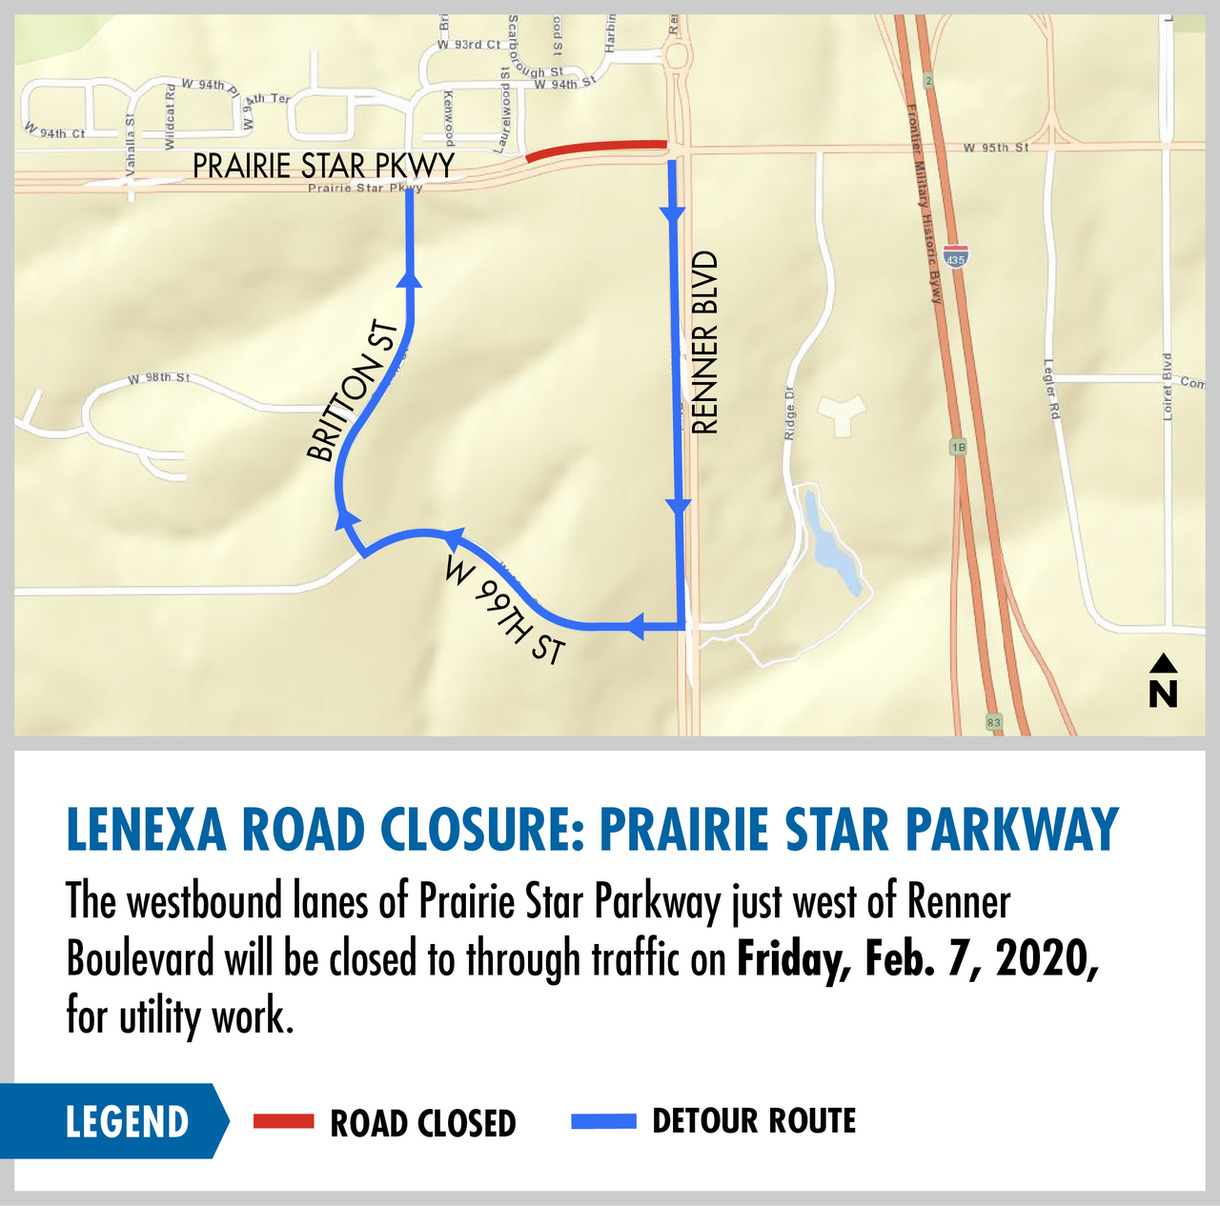 map showing westbound lanes of Prairie Star Parkway closed just west of Renner Boulevard on Friday, Feb. 7, 2020